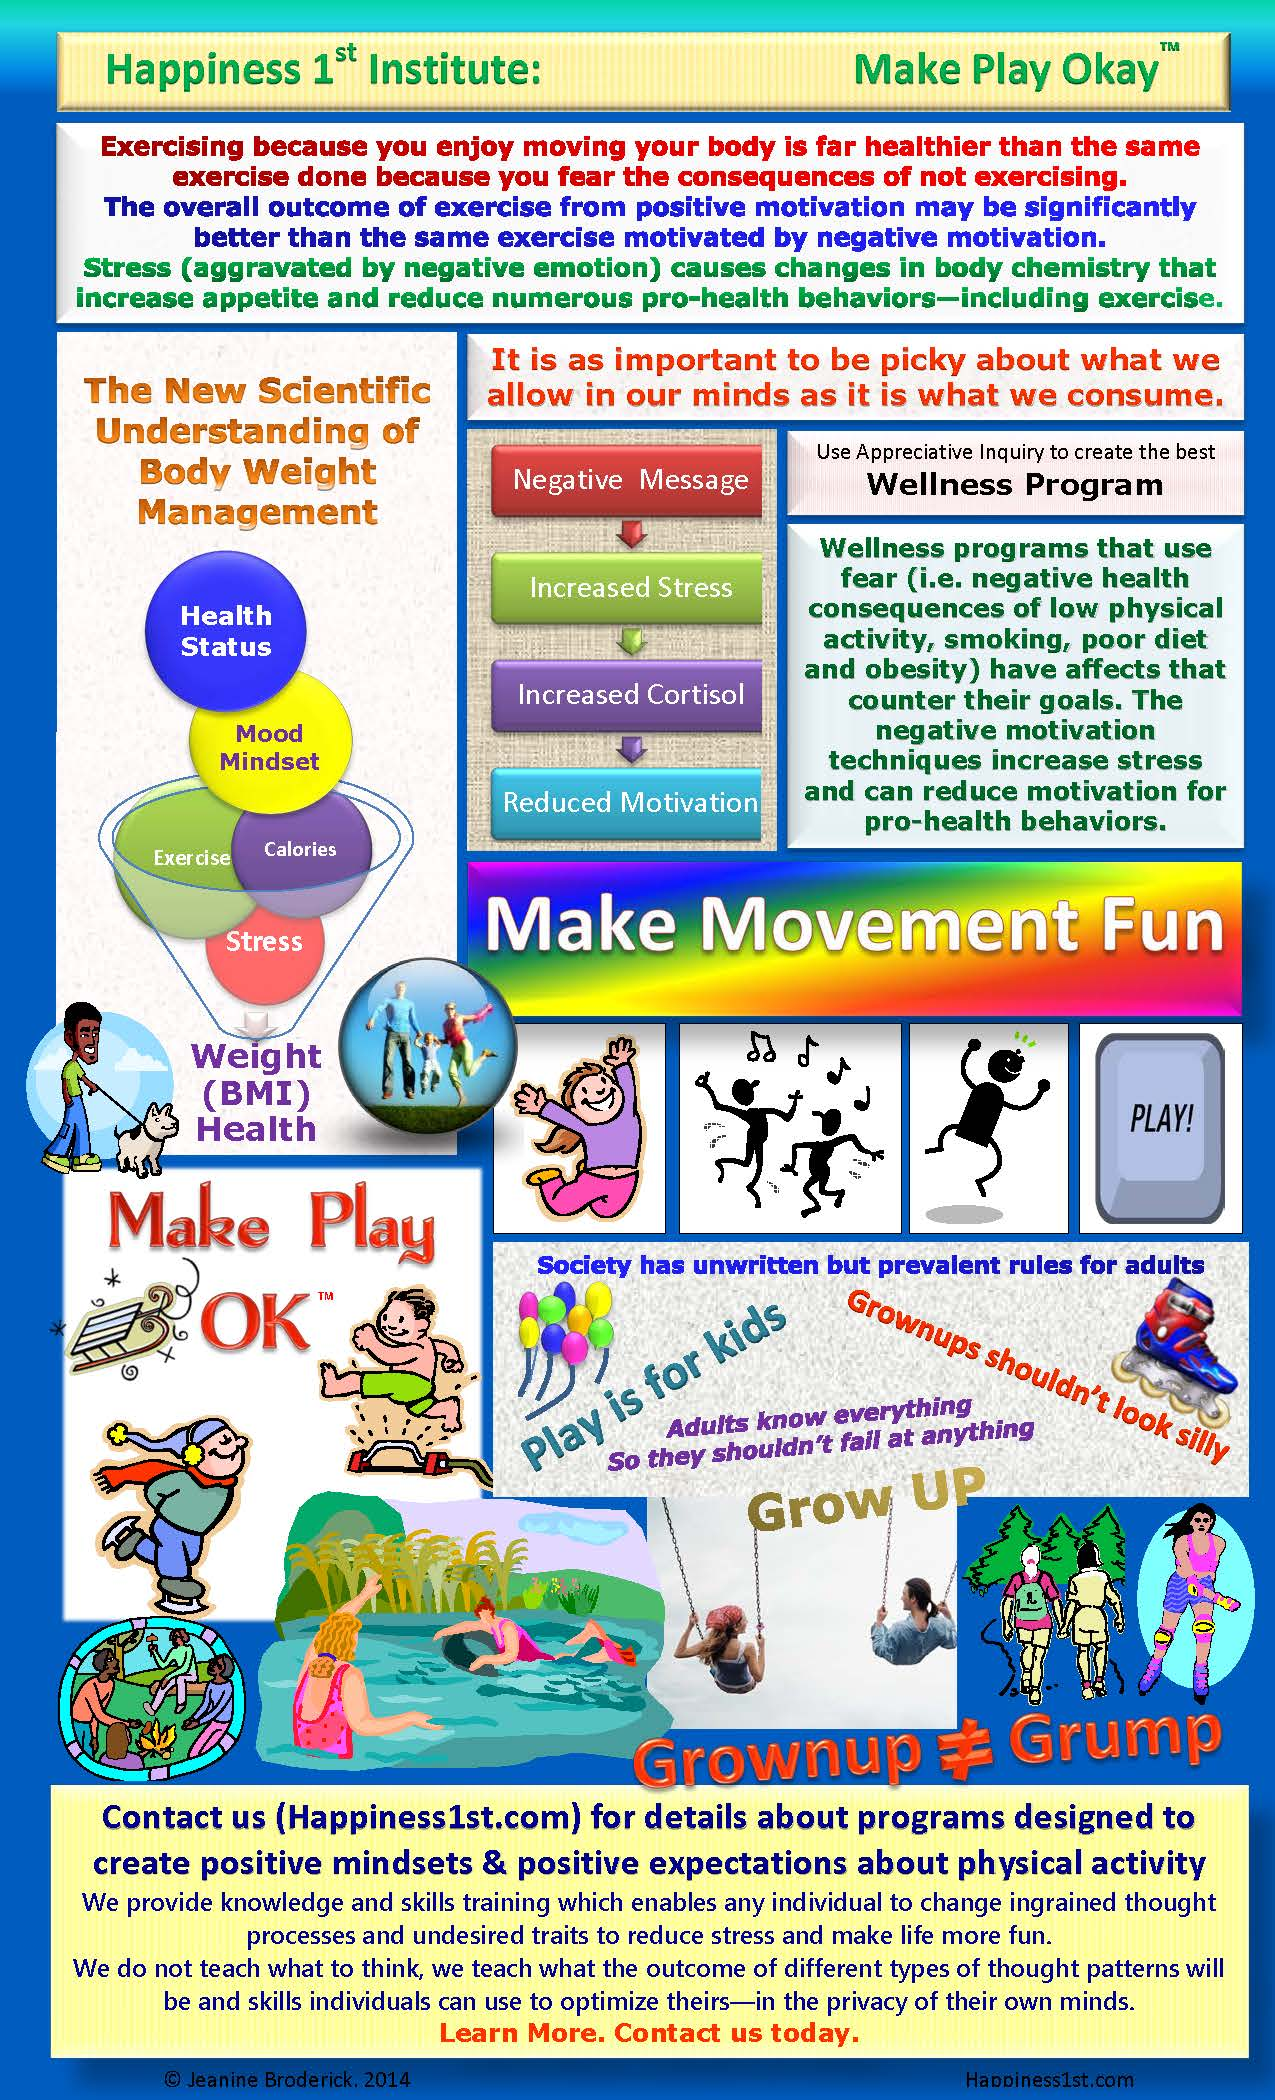 Make Play OK Physical Activity v022014 Final